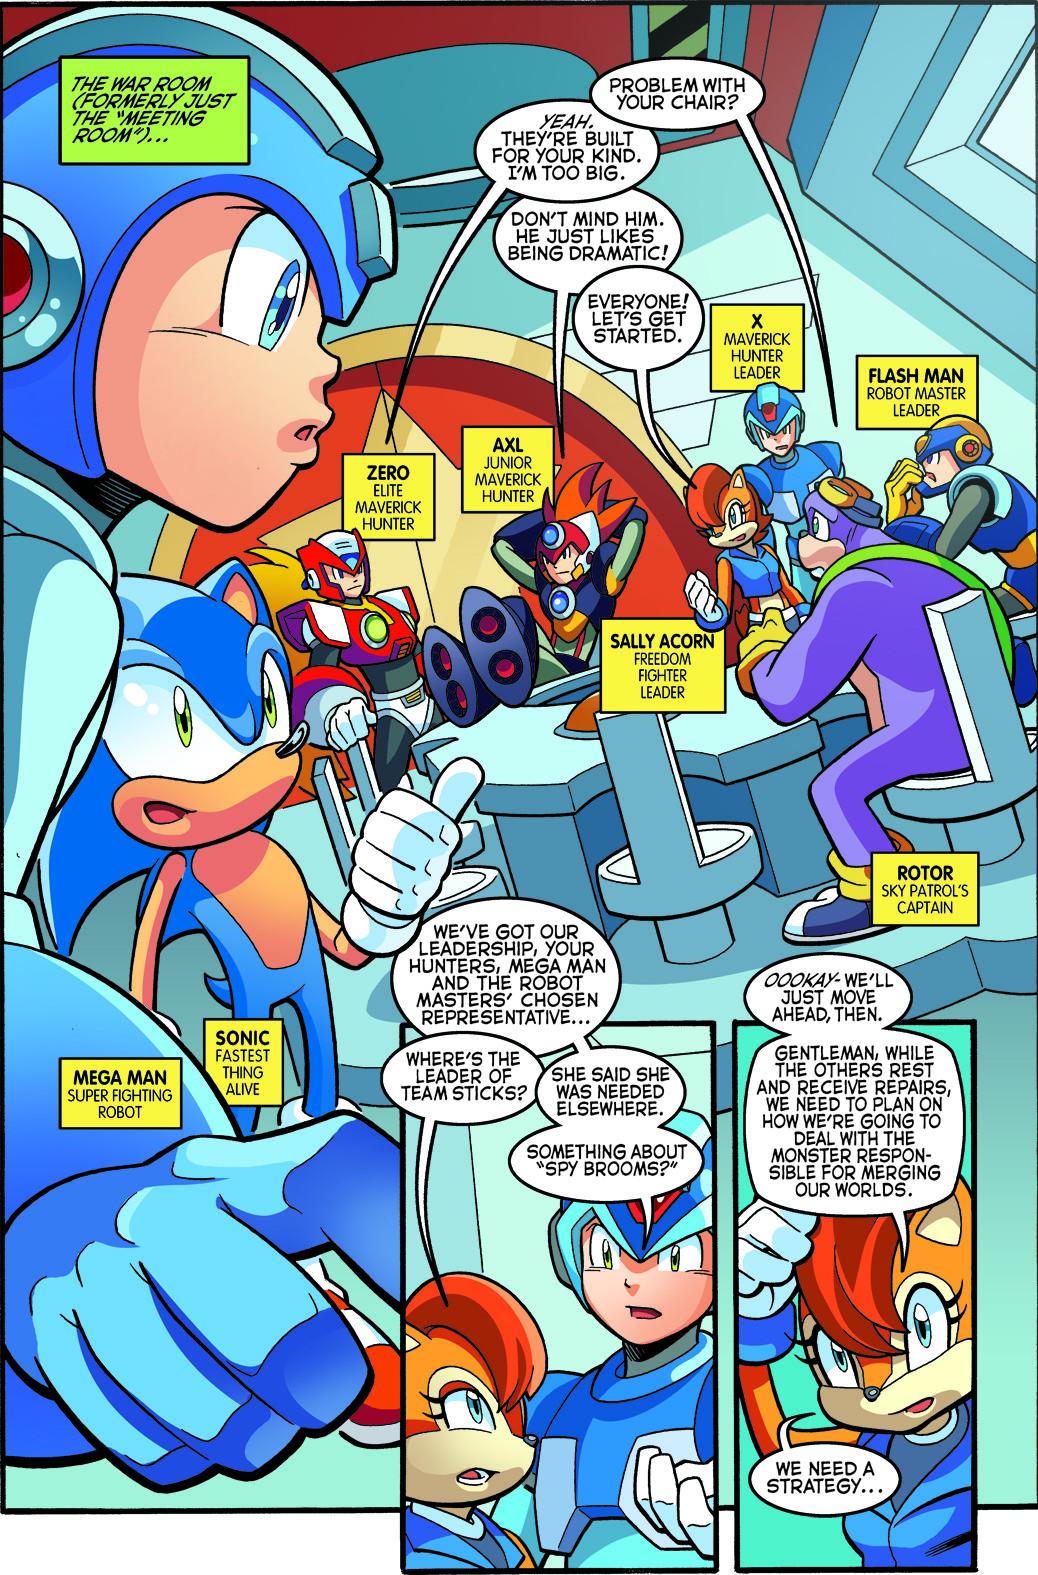 SONIC UNIVERSE - #77, page 2